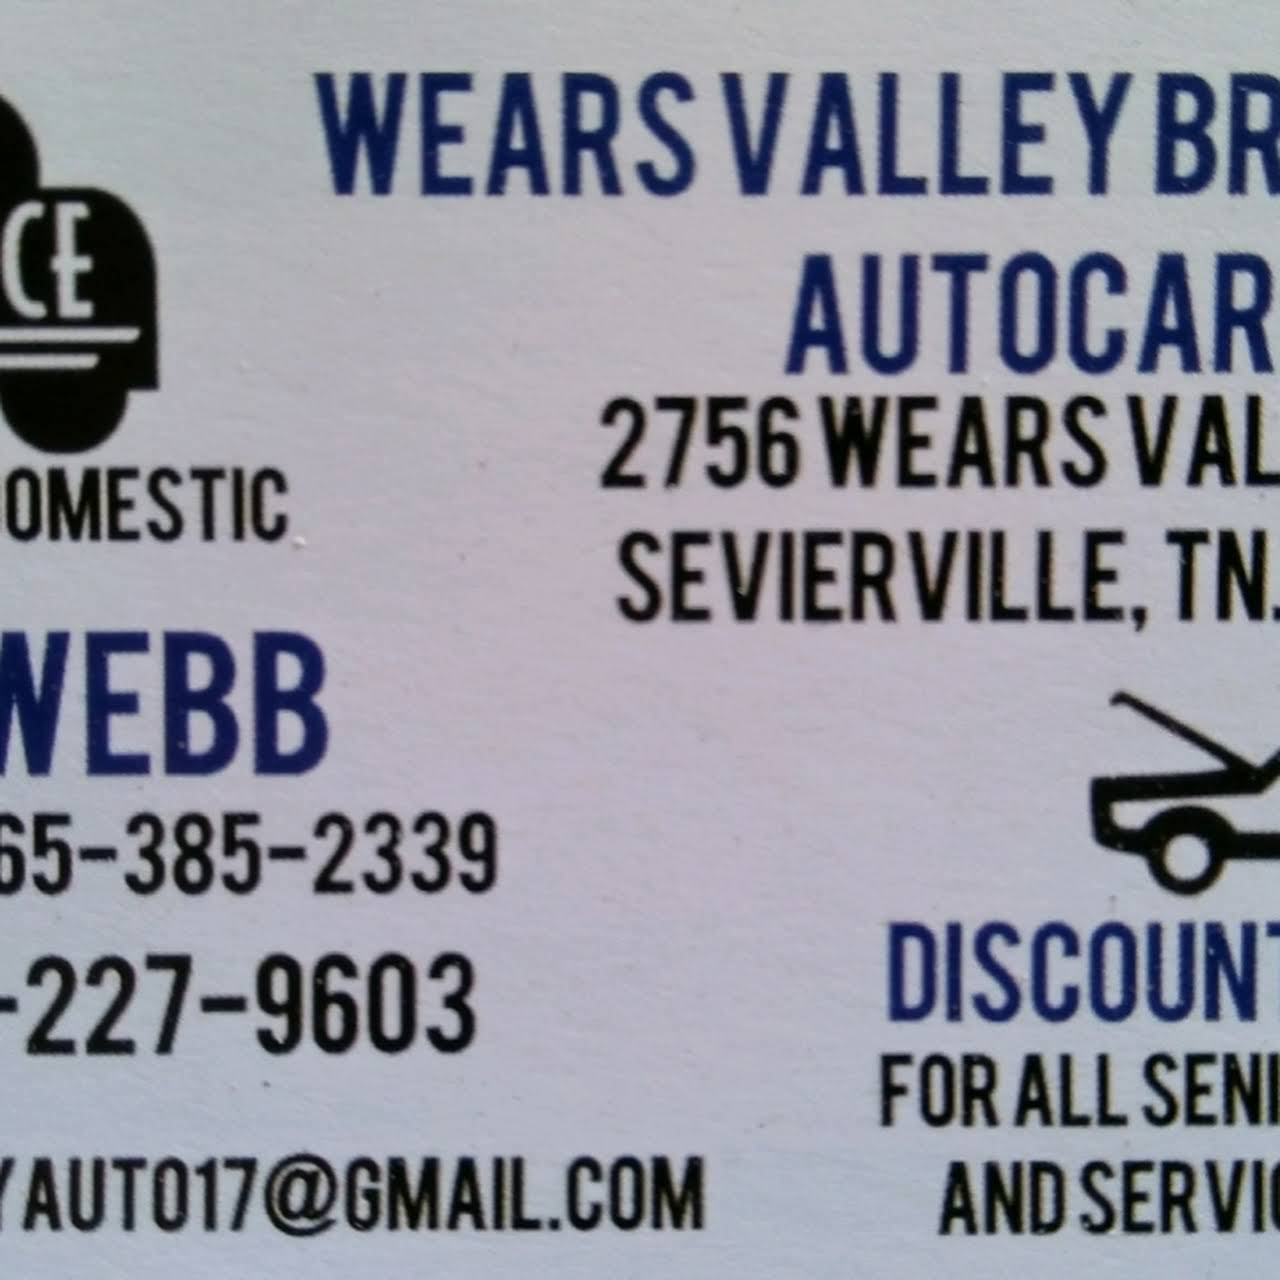 Wears Valley Brakes and Auto Care - Auto Repair Shop in